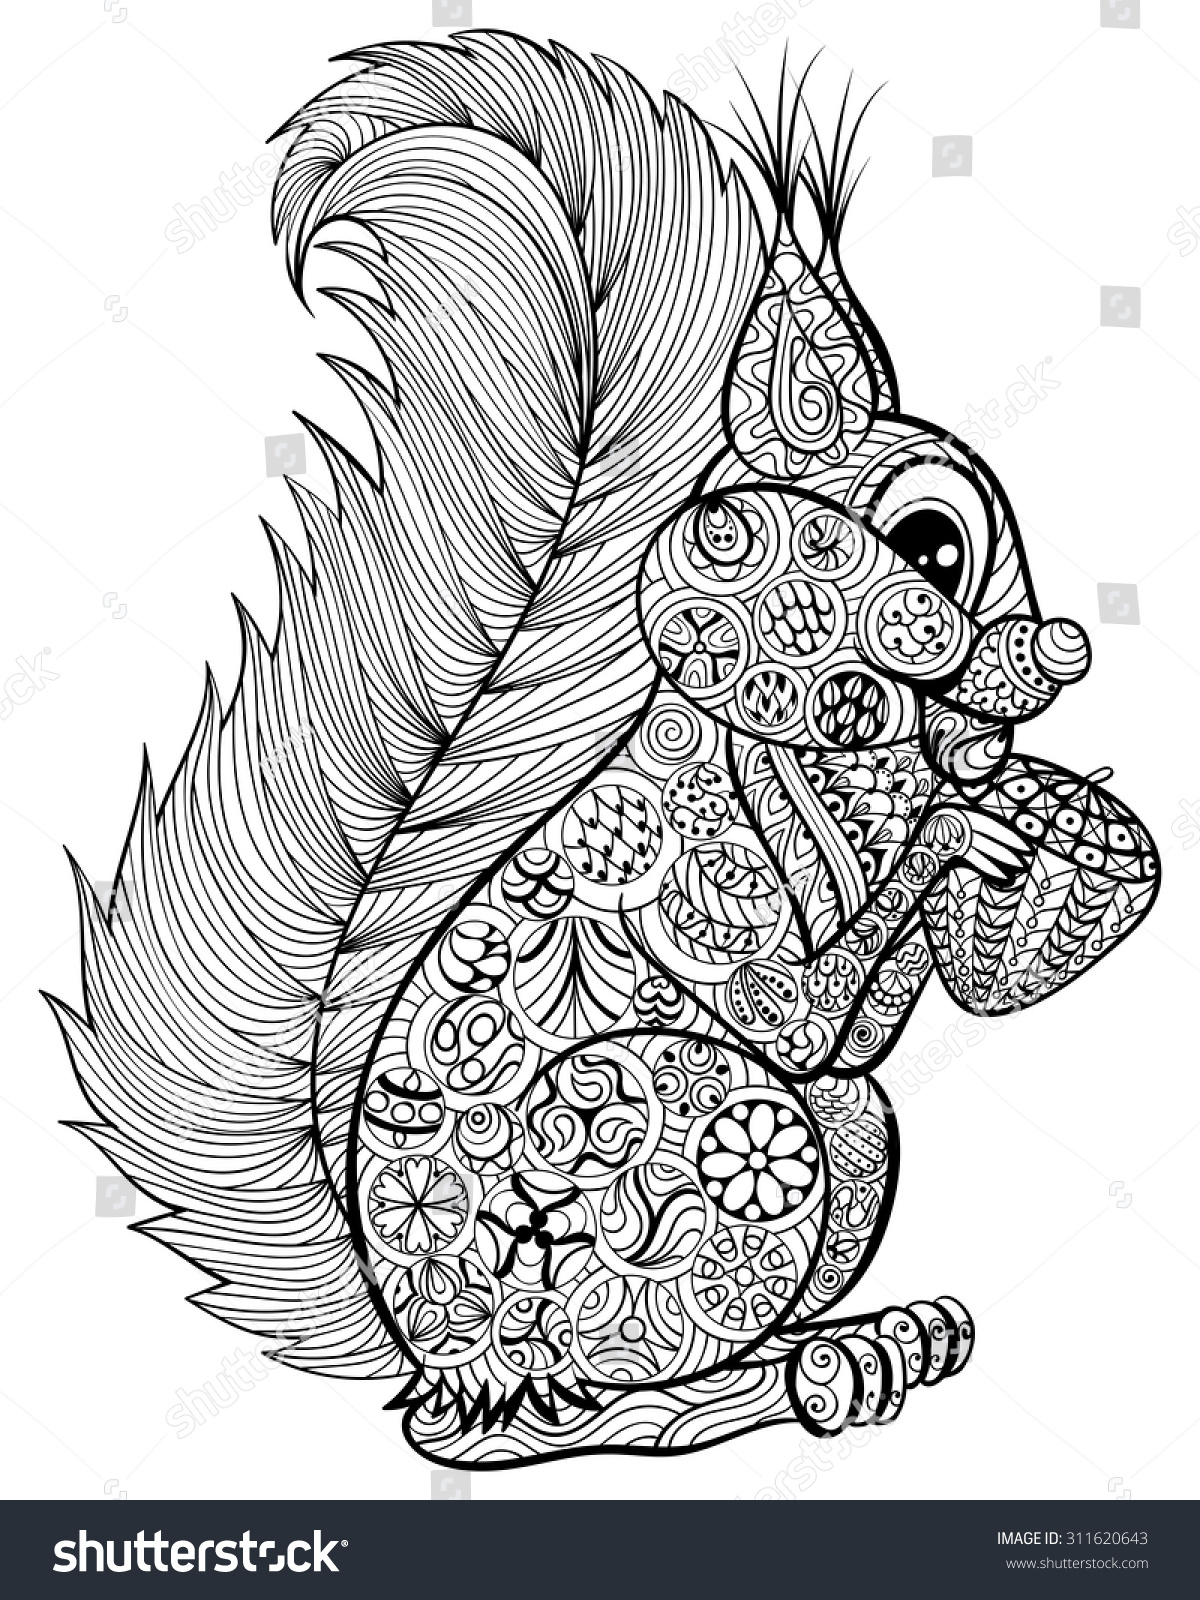 Printable Squirrel Coloring Pages Stress Relief Printable